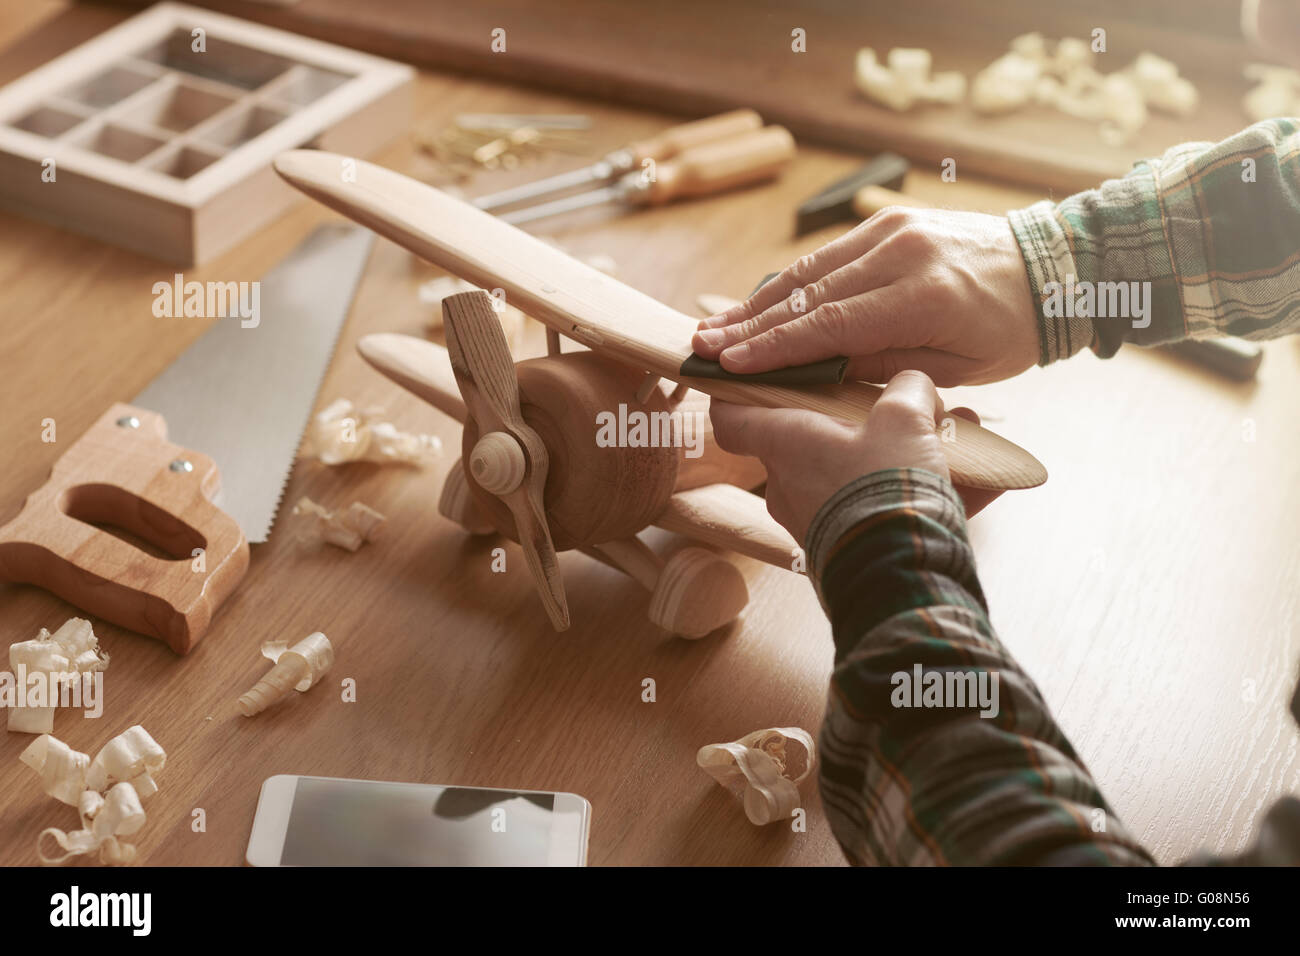 Craftsman smoothing a wooden toy surface with sandpaper, tools and wood shavings all around, hands close up Stock Photo